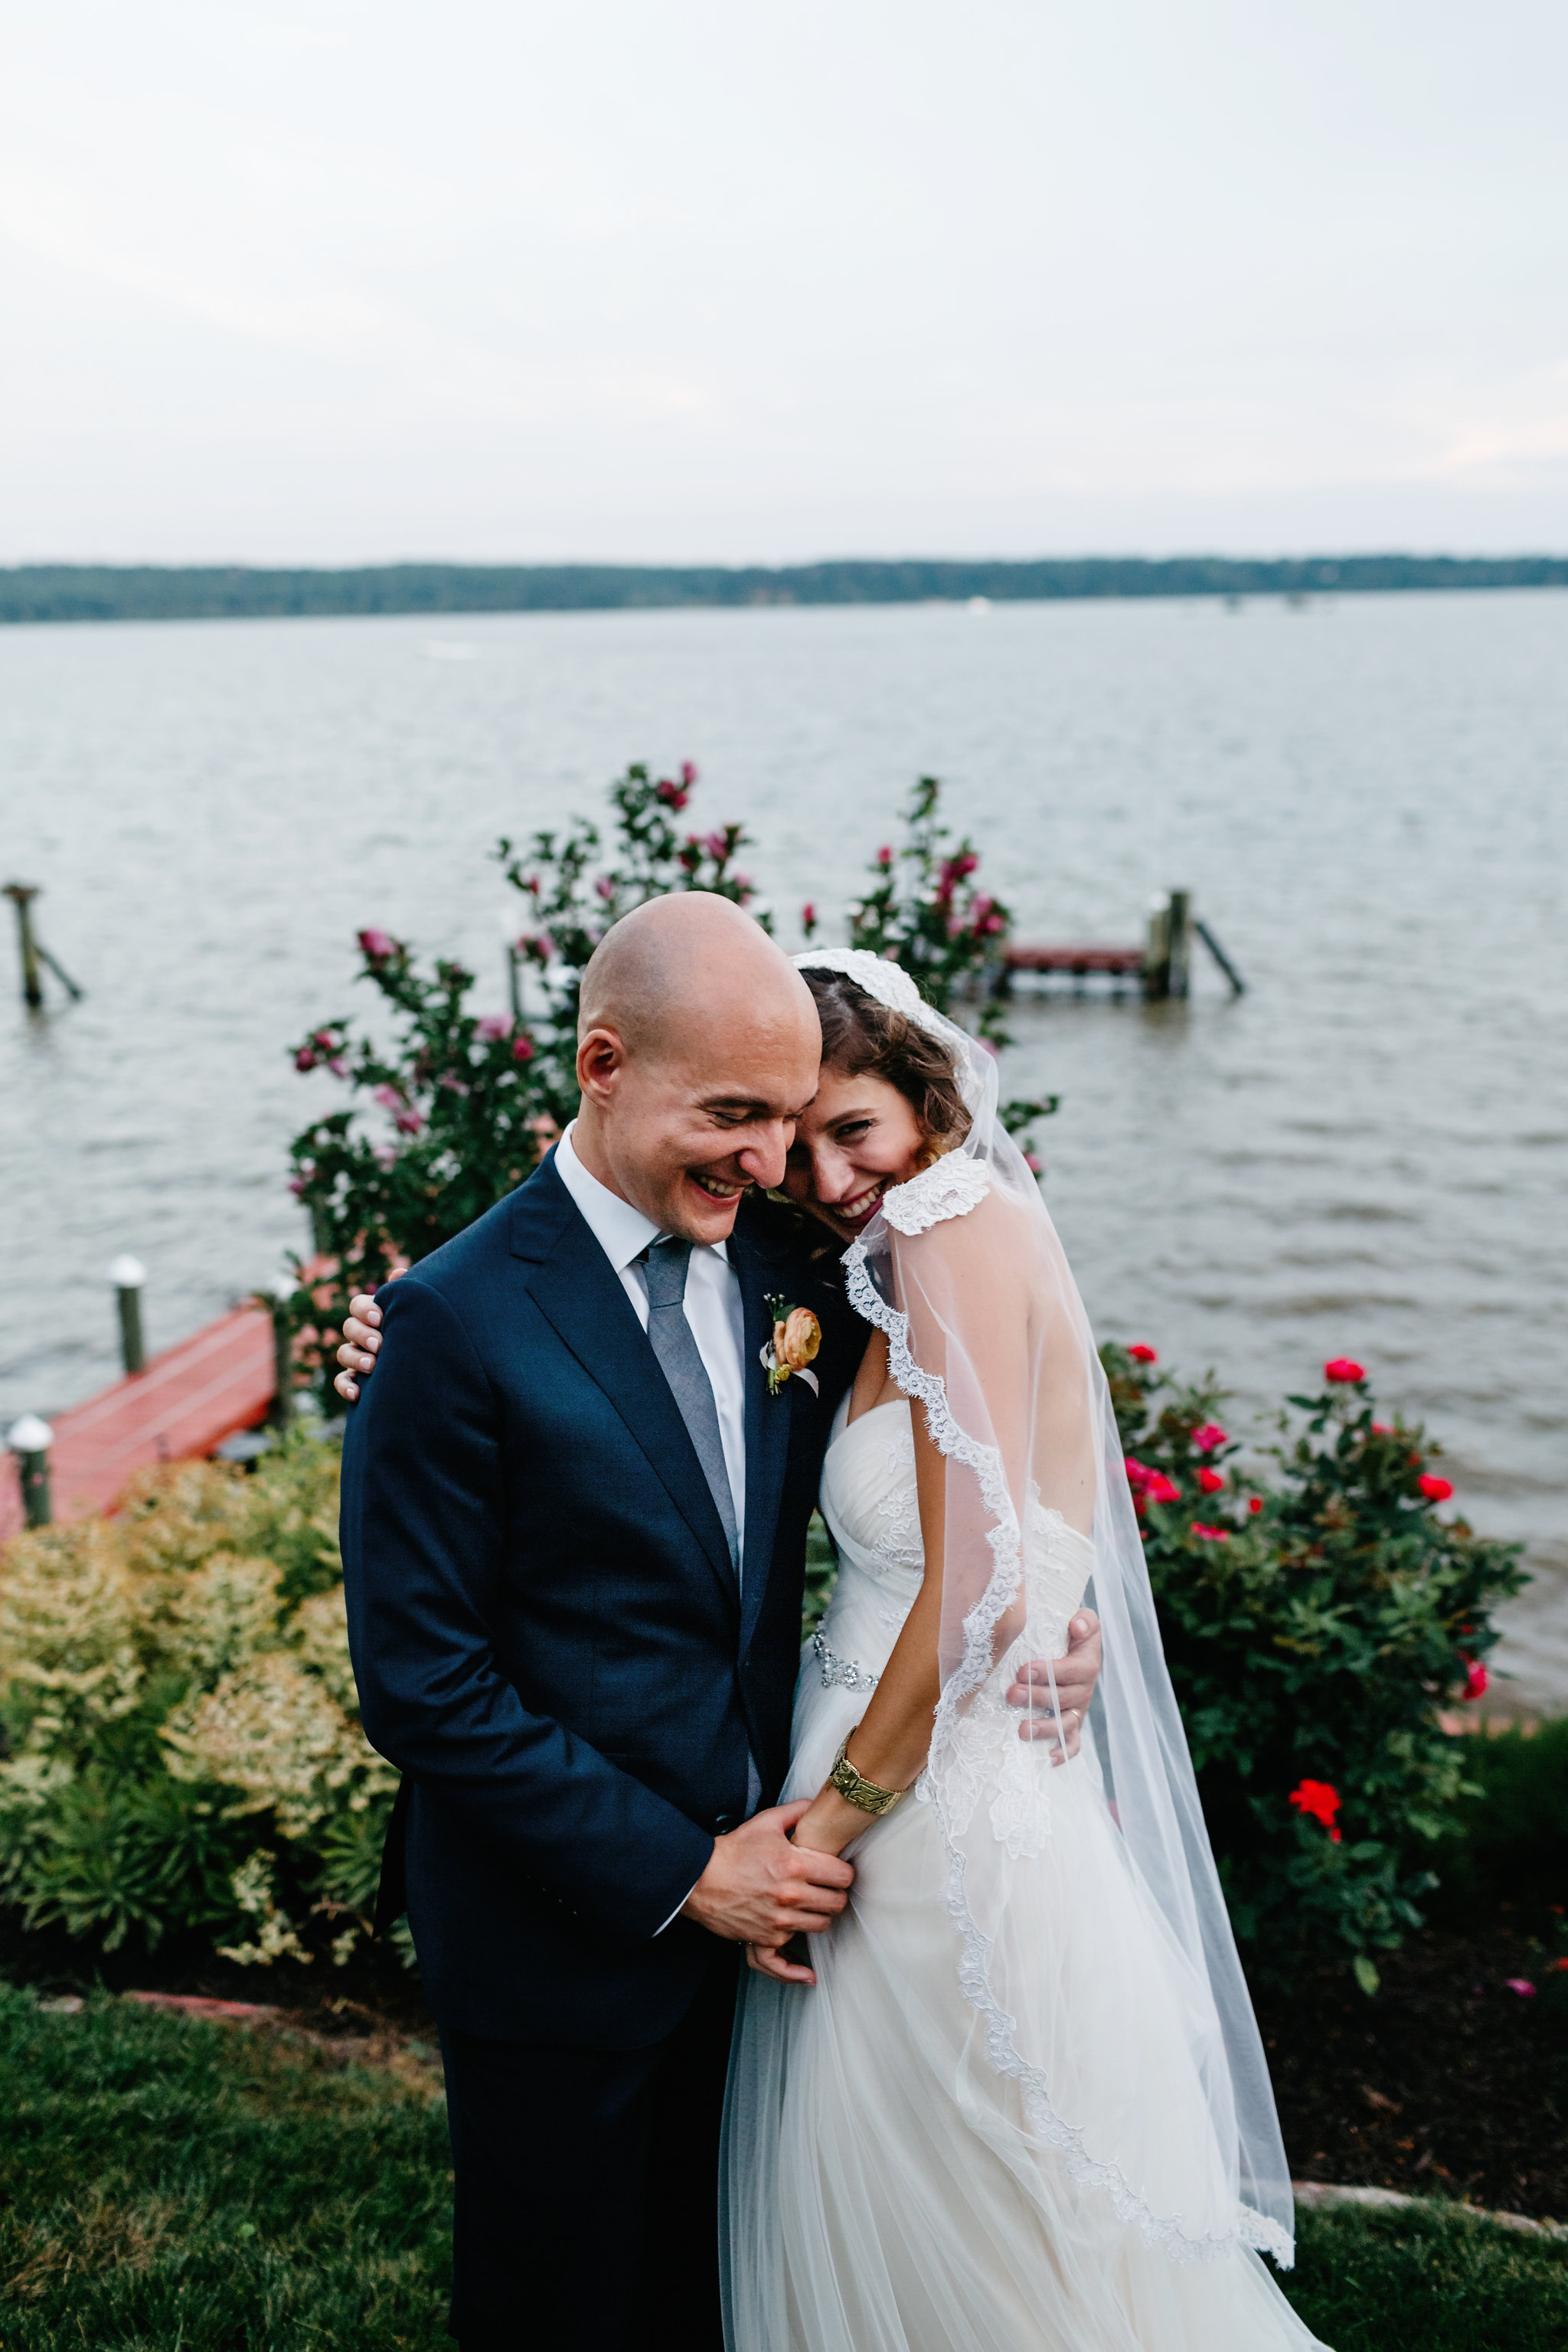 Maria&Dave2017-07-28at9.36.59AM101.jpg